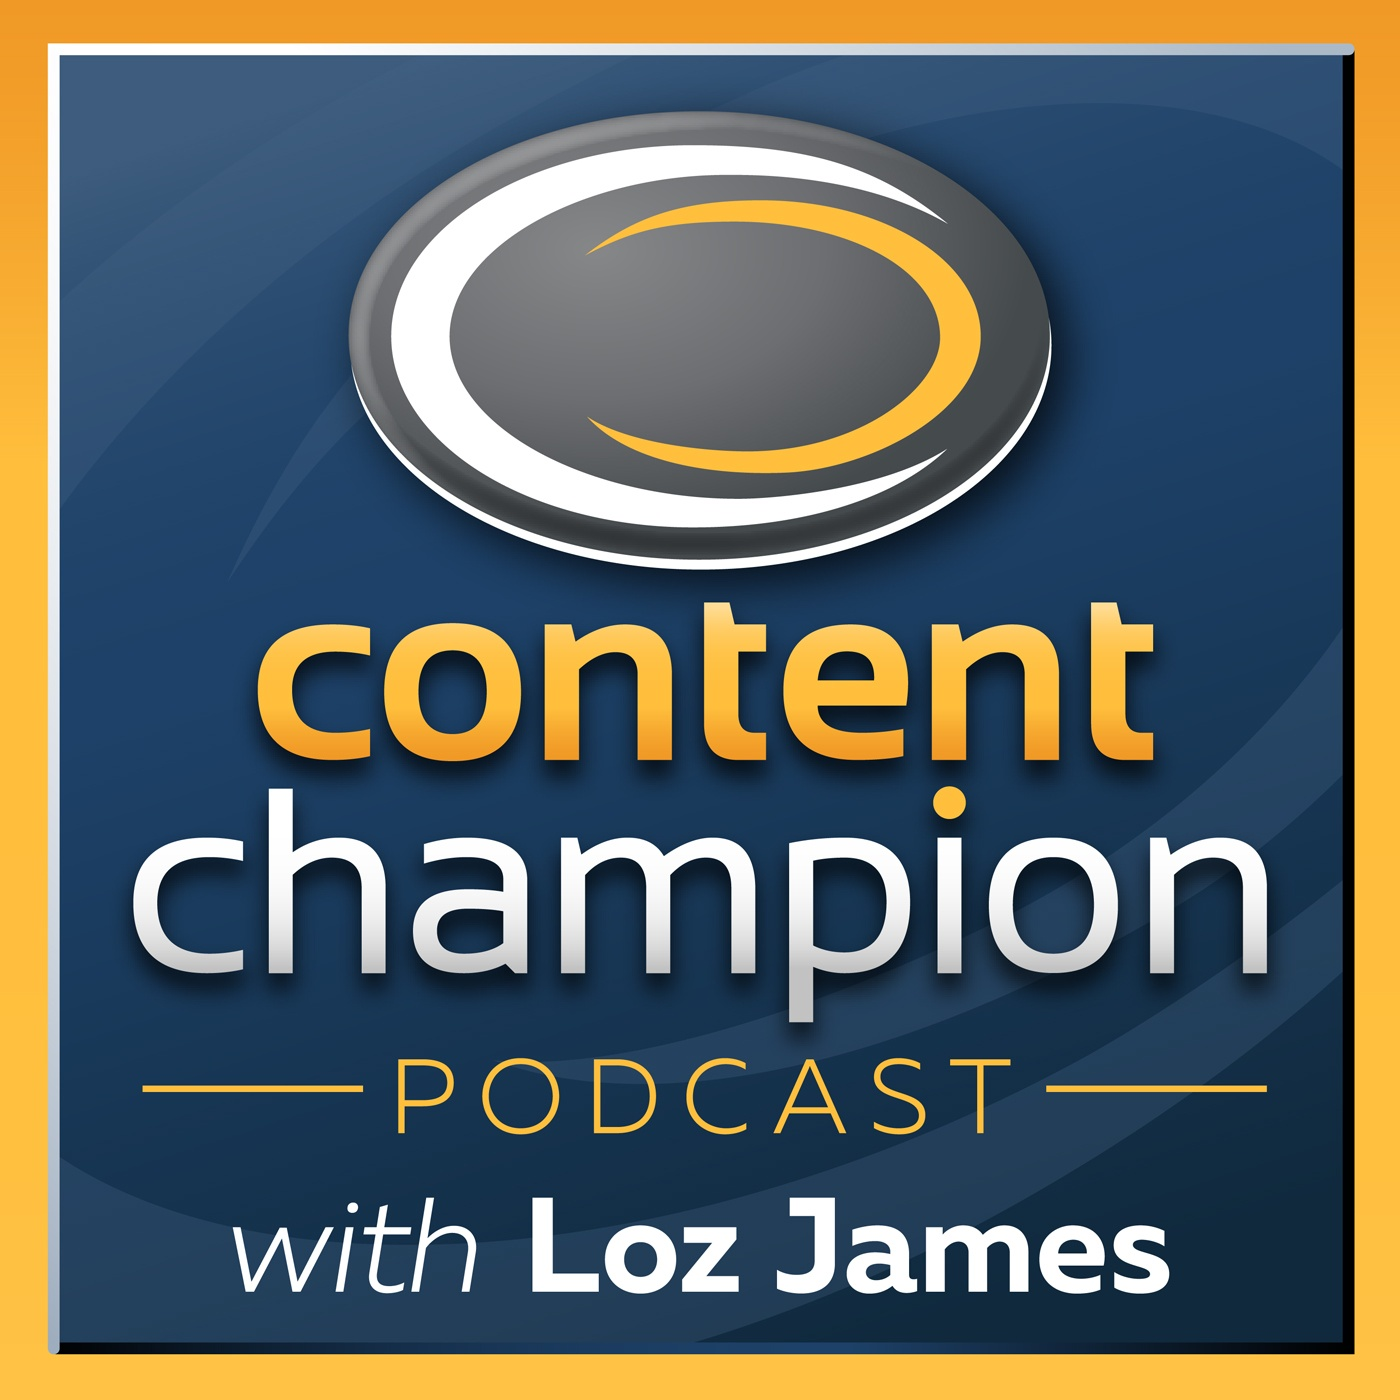 Content Champion Podcast